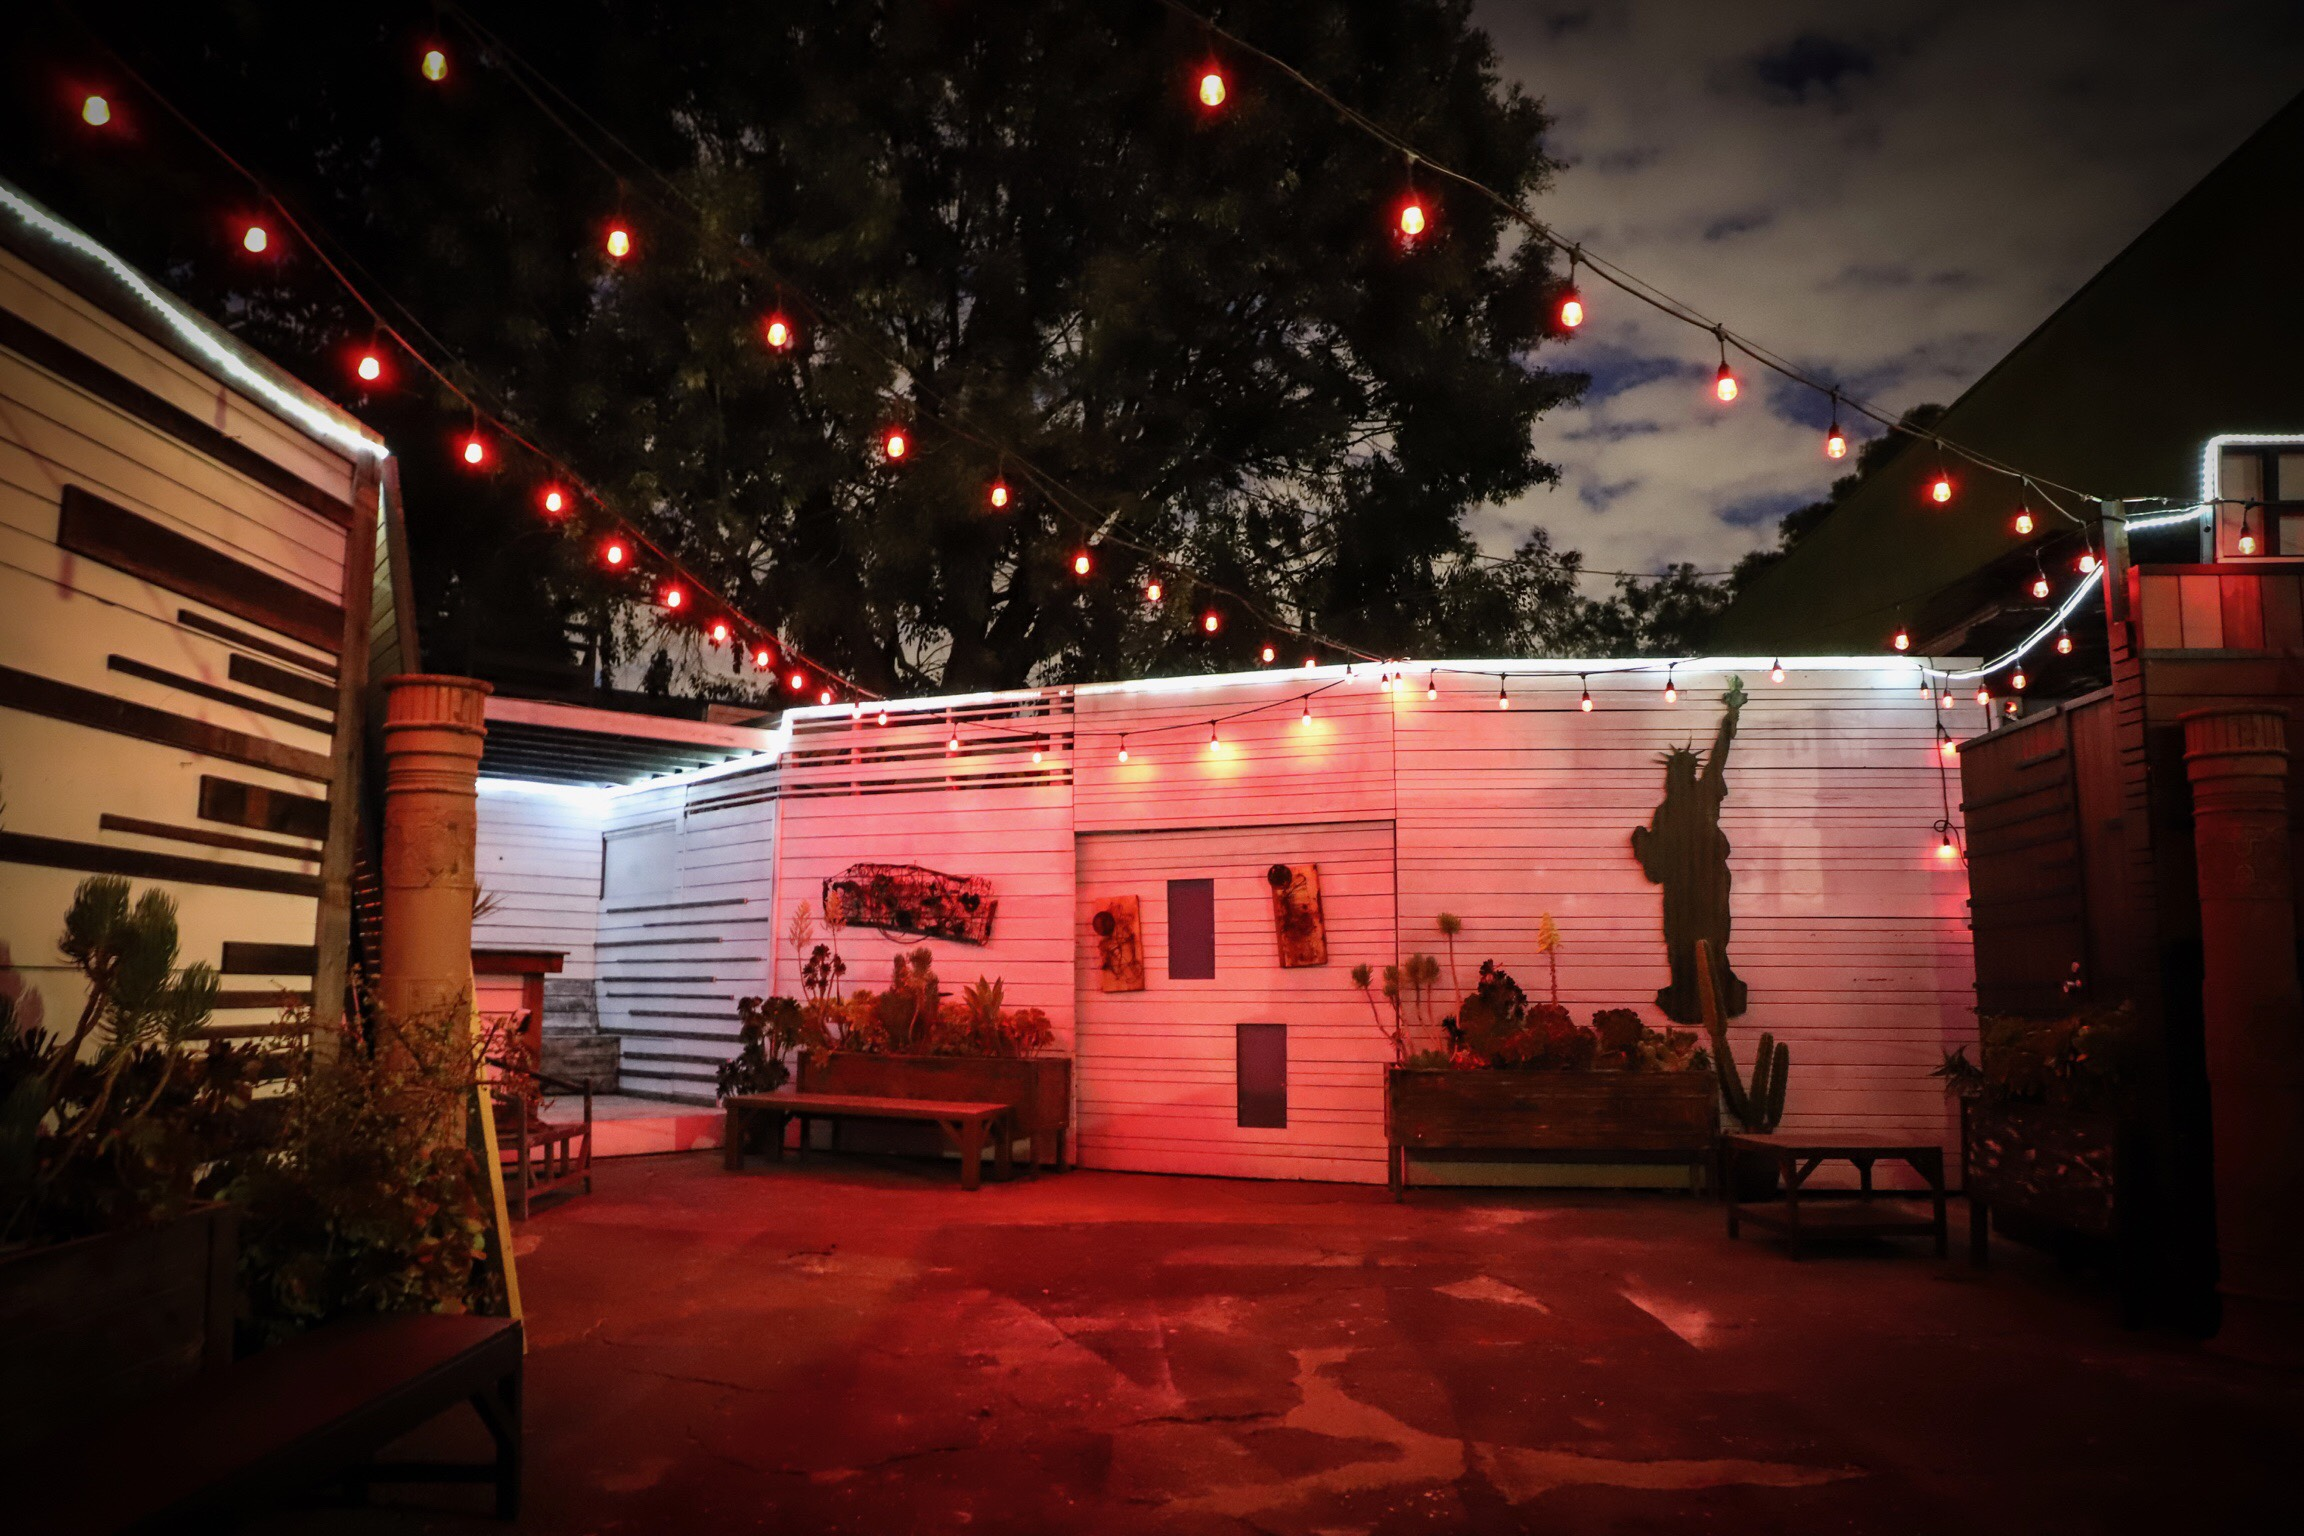 event space - outdoors - los angeles - night time.jpeg